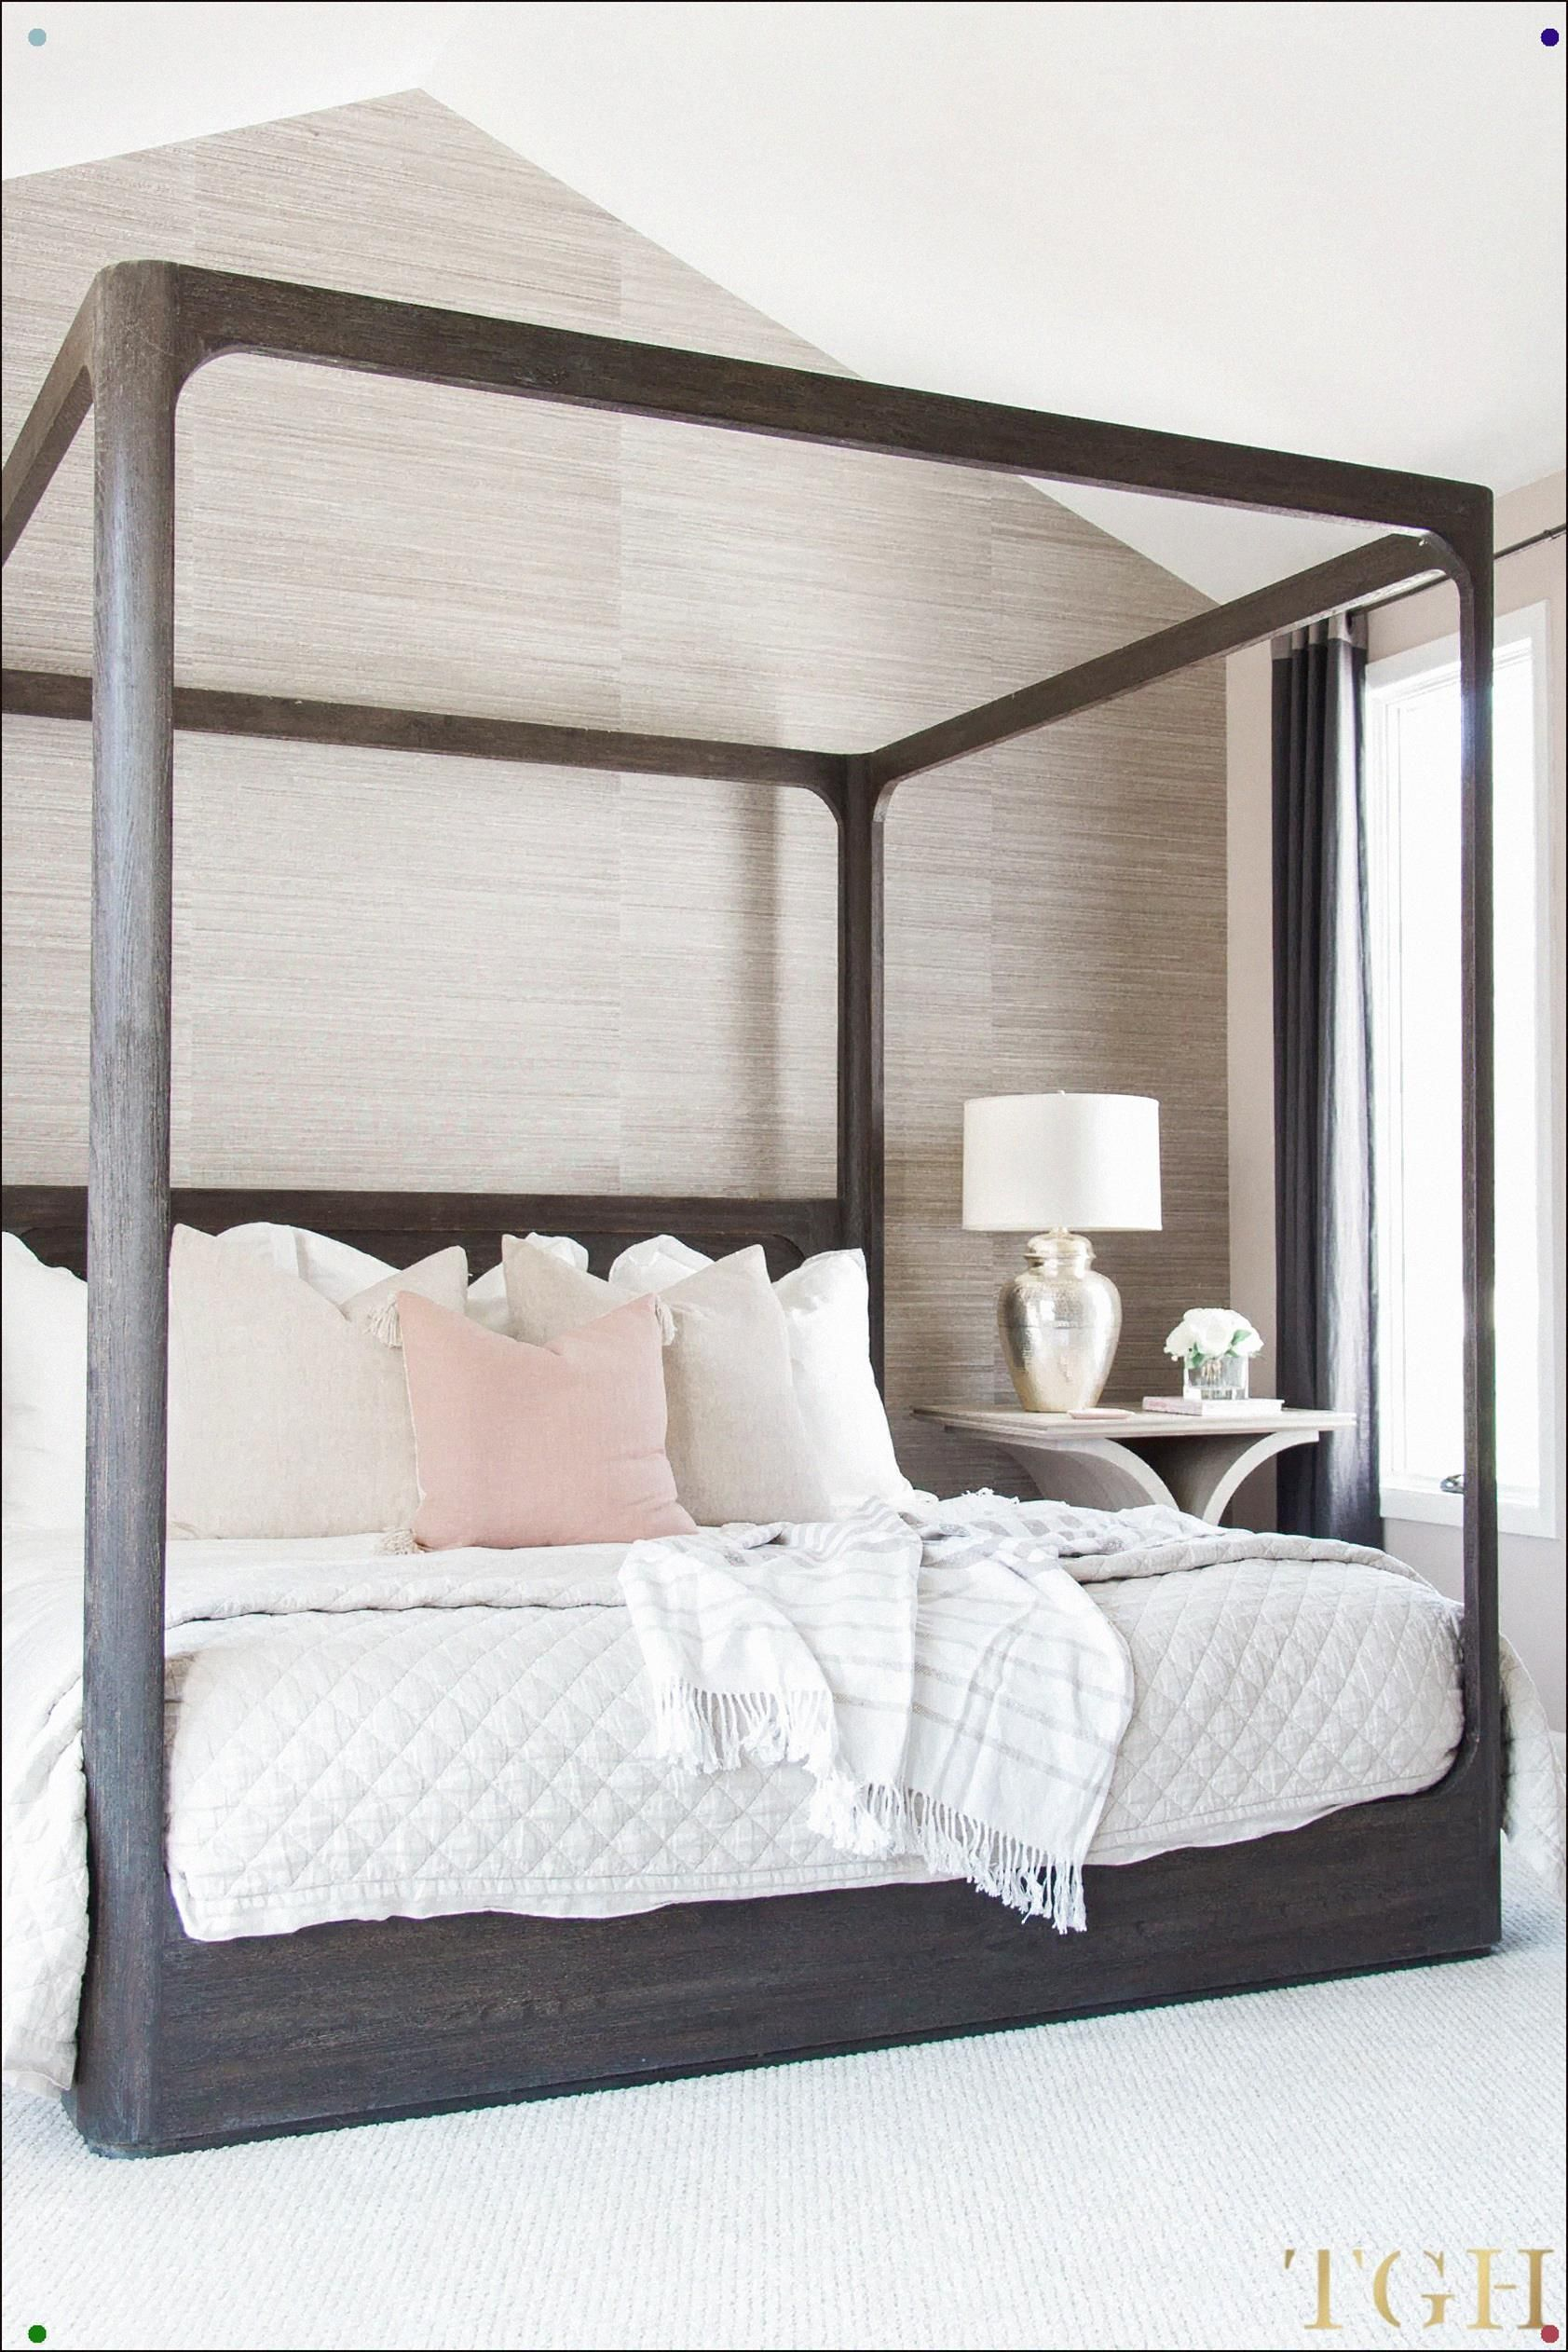 Decorating Our Master Bedroom With Vaulted Ceilings - The Greenspring Home #vaultedceilingdecor Decorating Our Master Bedroom With Vaulted Ceilings - The Greenspring Home #vaultedceilingdecor Decorating Our Master Bedroom With Vaulted Ceilings - The Greenspring Home #vaultedceilingdecor Decorating Our Master Bedroom With Vaulted Ceilings - The Greenspring Home #vaultedceilingdecor